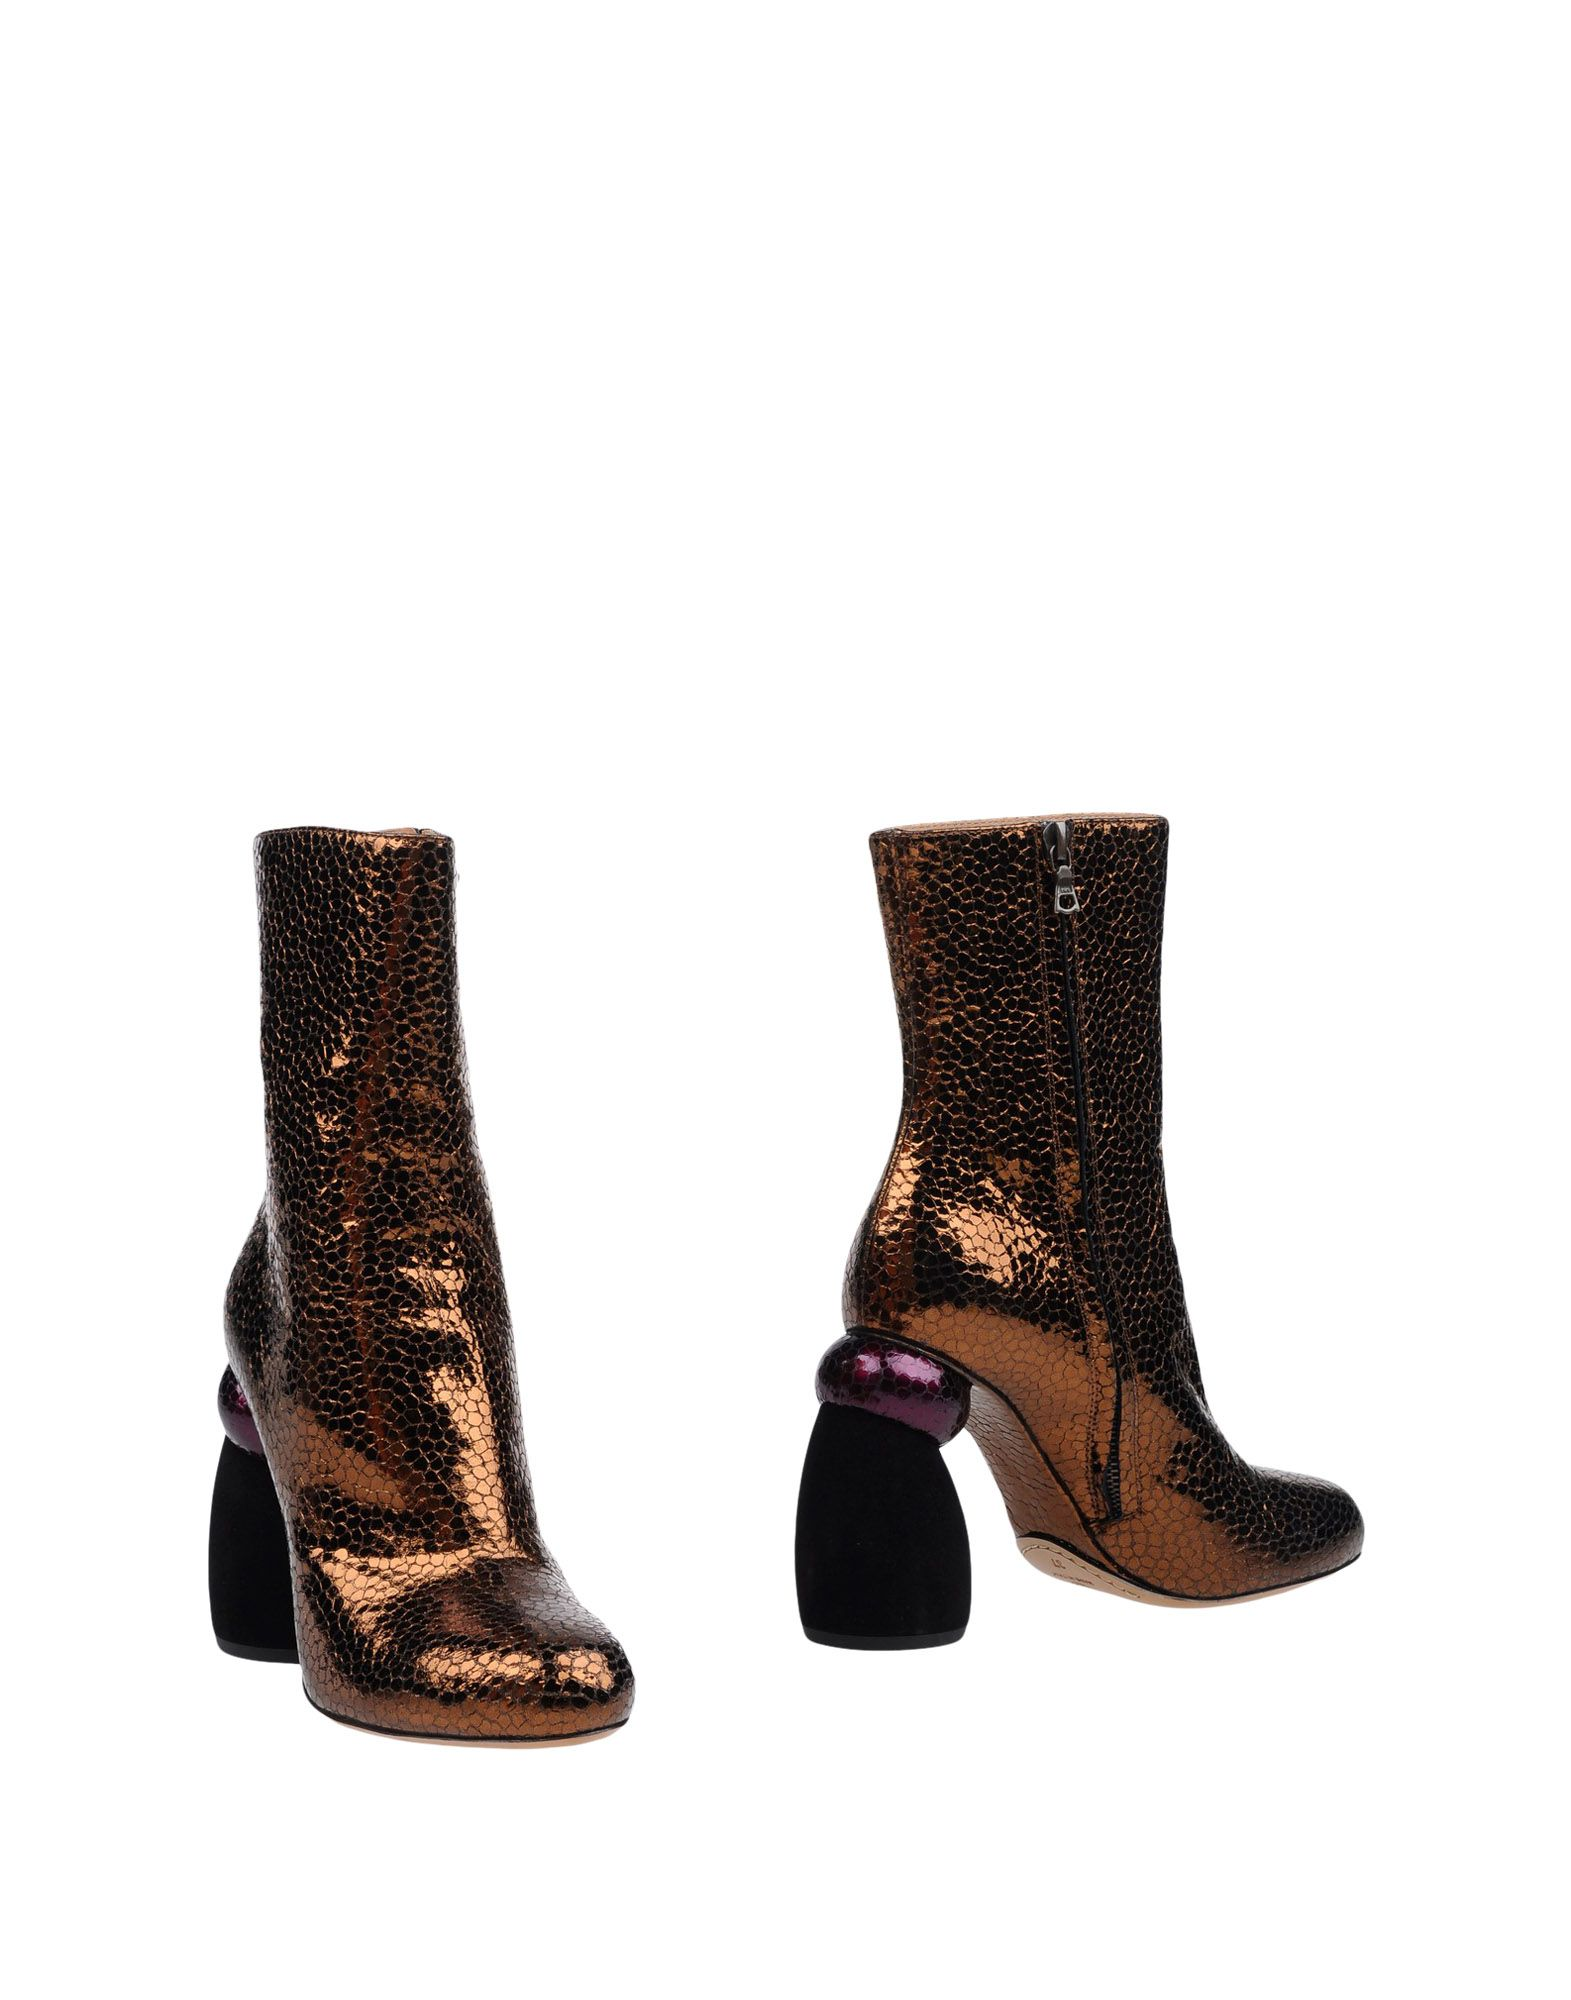 Bottine Dries Van Noten Femme - Bottines Dries Van Noten sur